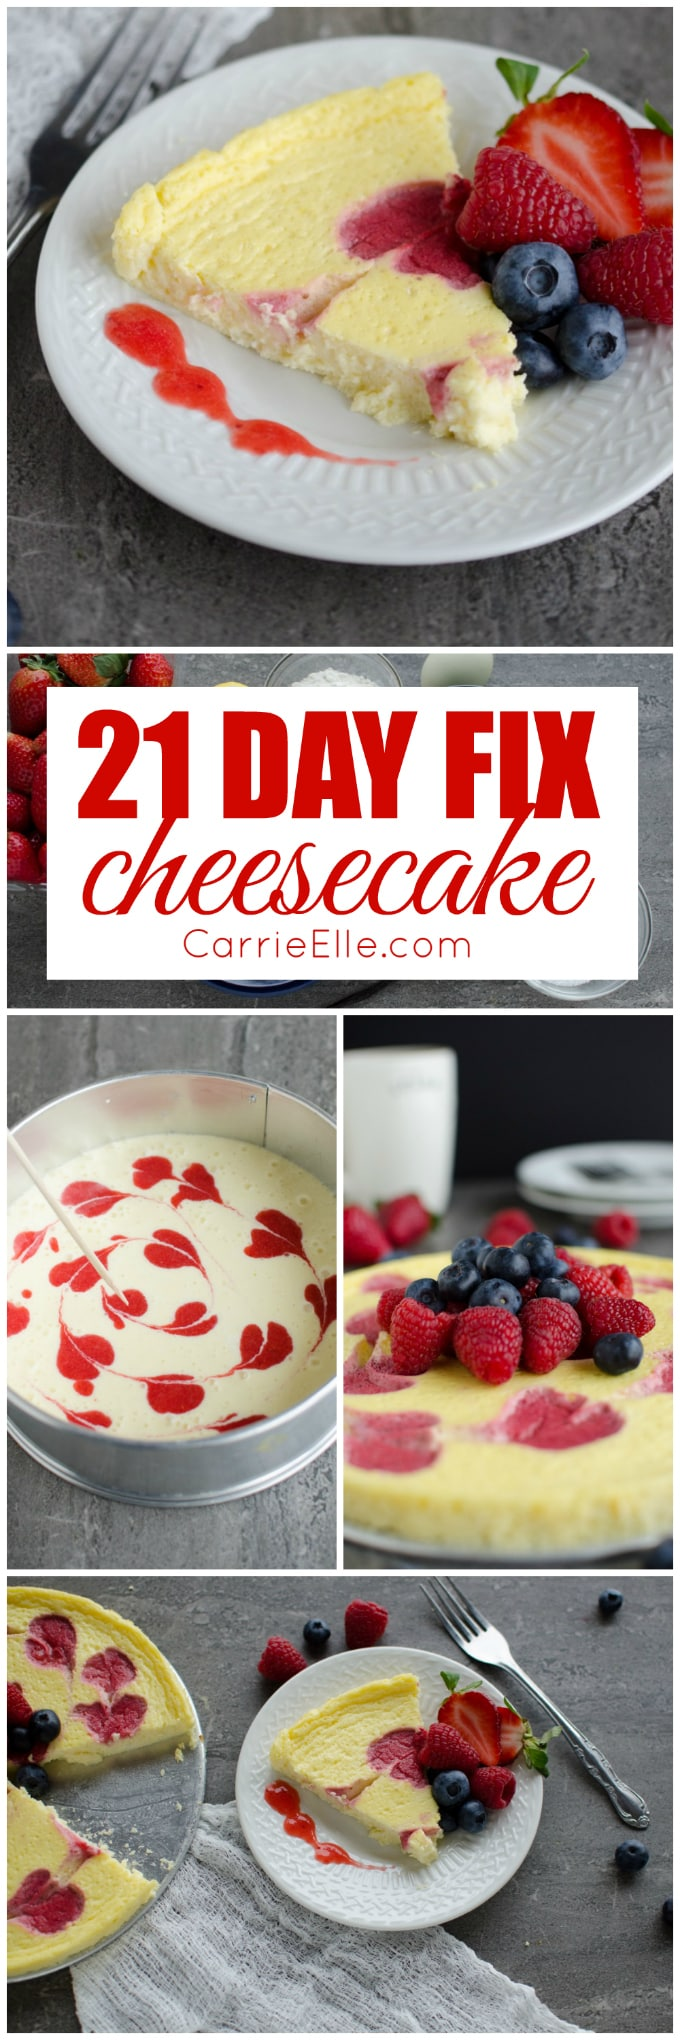 21 Day Fix Cheesecake Recipe